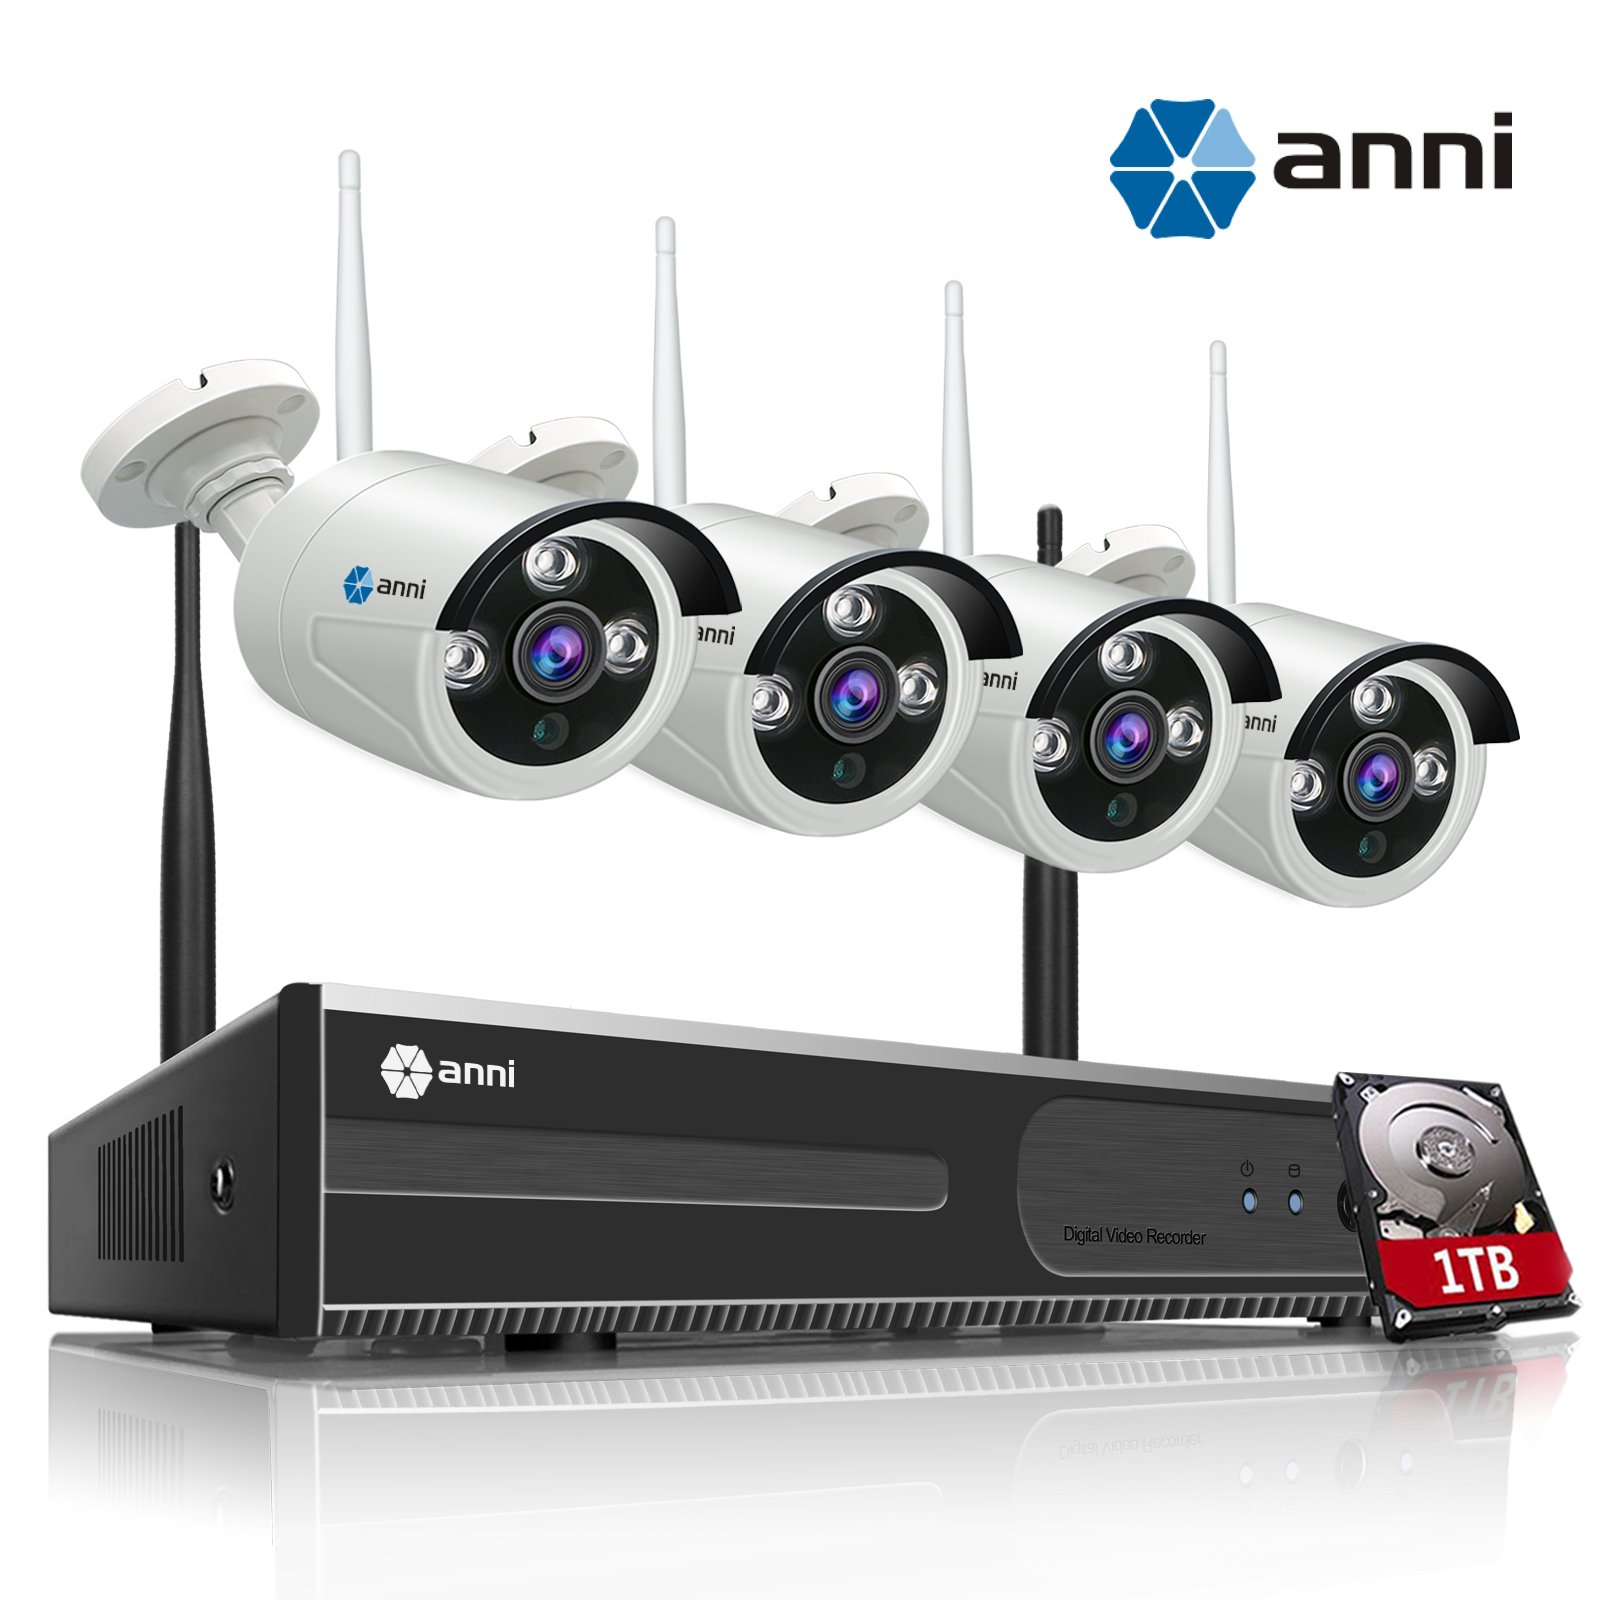 anni 4CH 720P HD Wireless Security CCTV Surveillance Camera, WiFi NVR Kit and (4) 1.0MP Megapixel Wireless Indoor Outdoor Bullet IP Cameras, P2P, 65ft Night Vision with 1TB Hard Drive